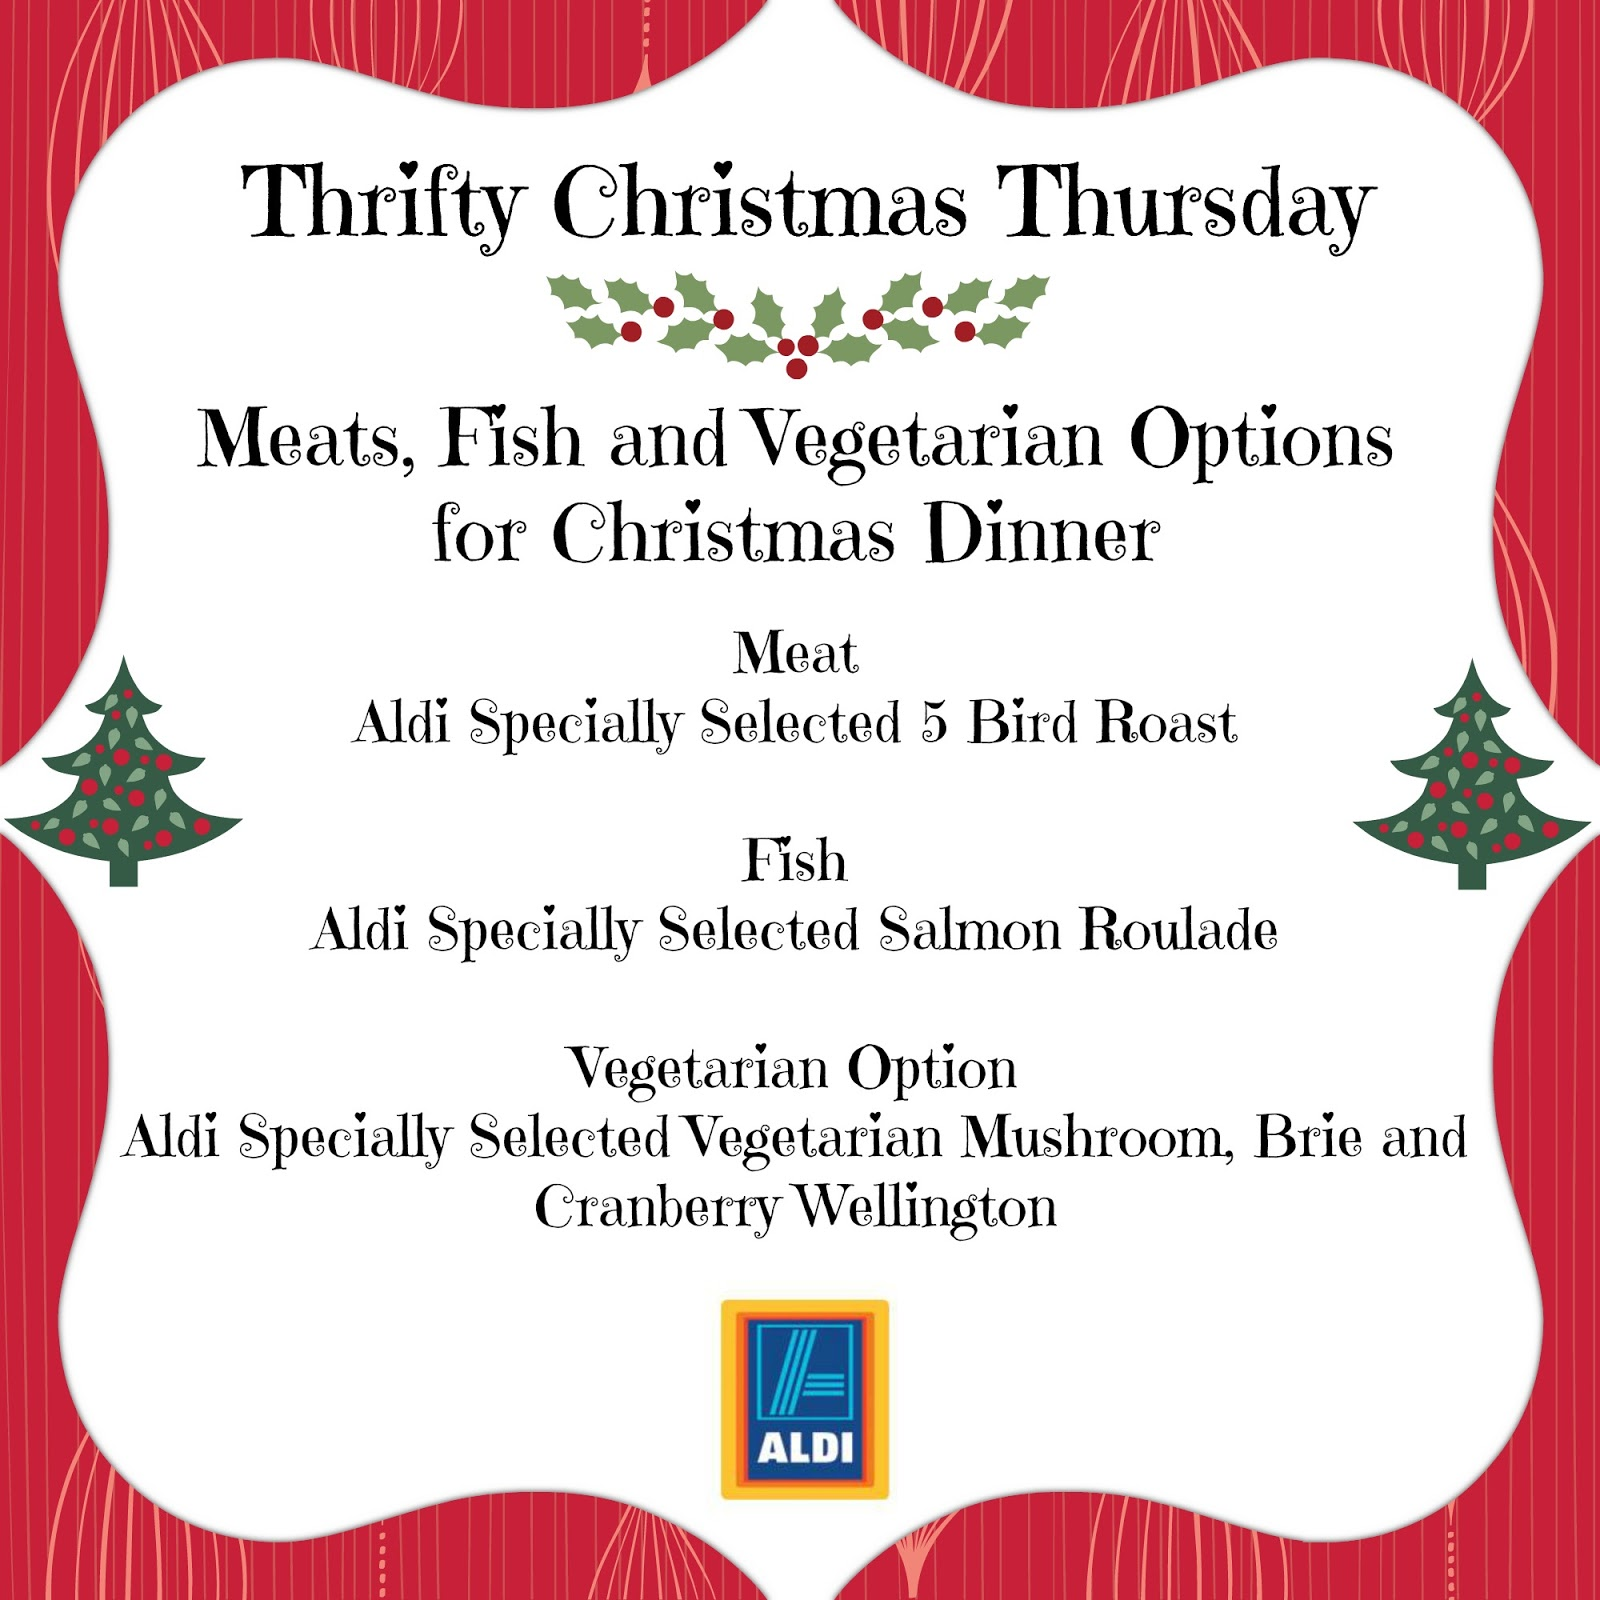 Hijacked By Twins: Thrifty Christmas Thursday with Aldi - Meat, Fish ...